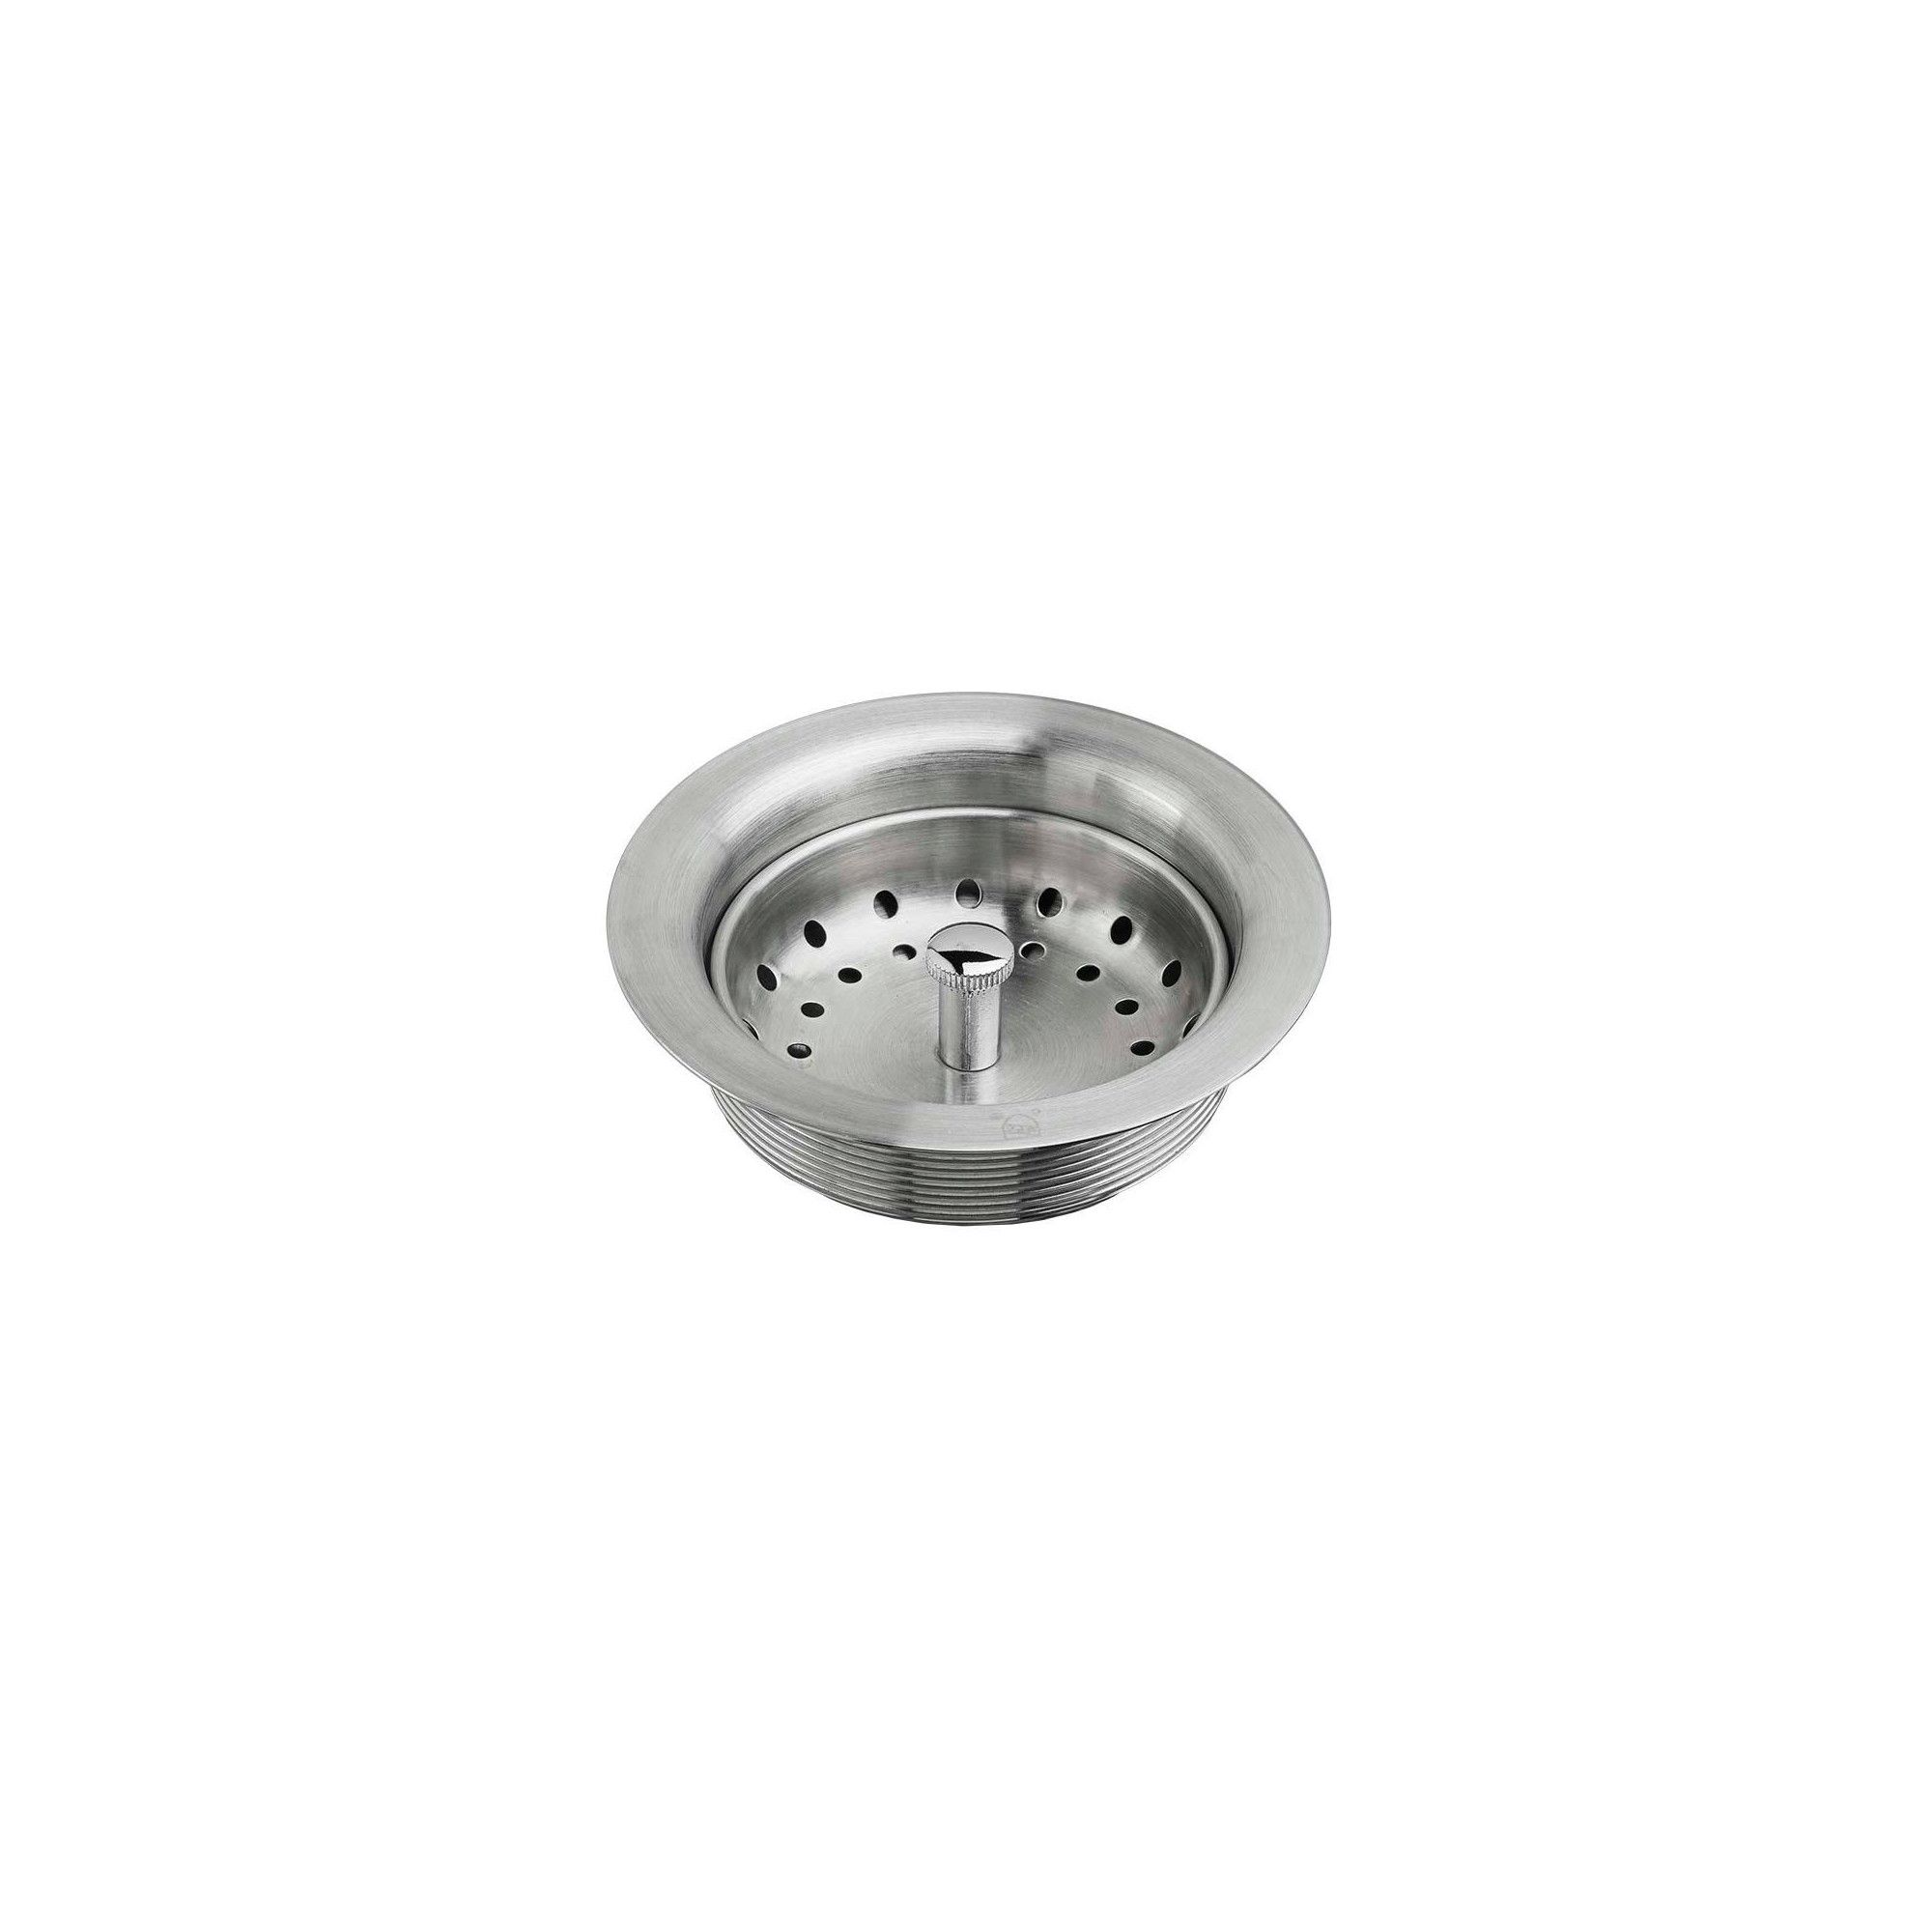 American Standard 9028 000 Kitchen Sink Drain With Strainer In Stainless Steel Stainless Steel Silver Sink Drain American Standard Kitchen Sink